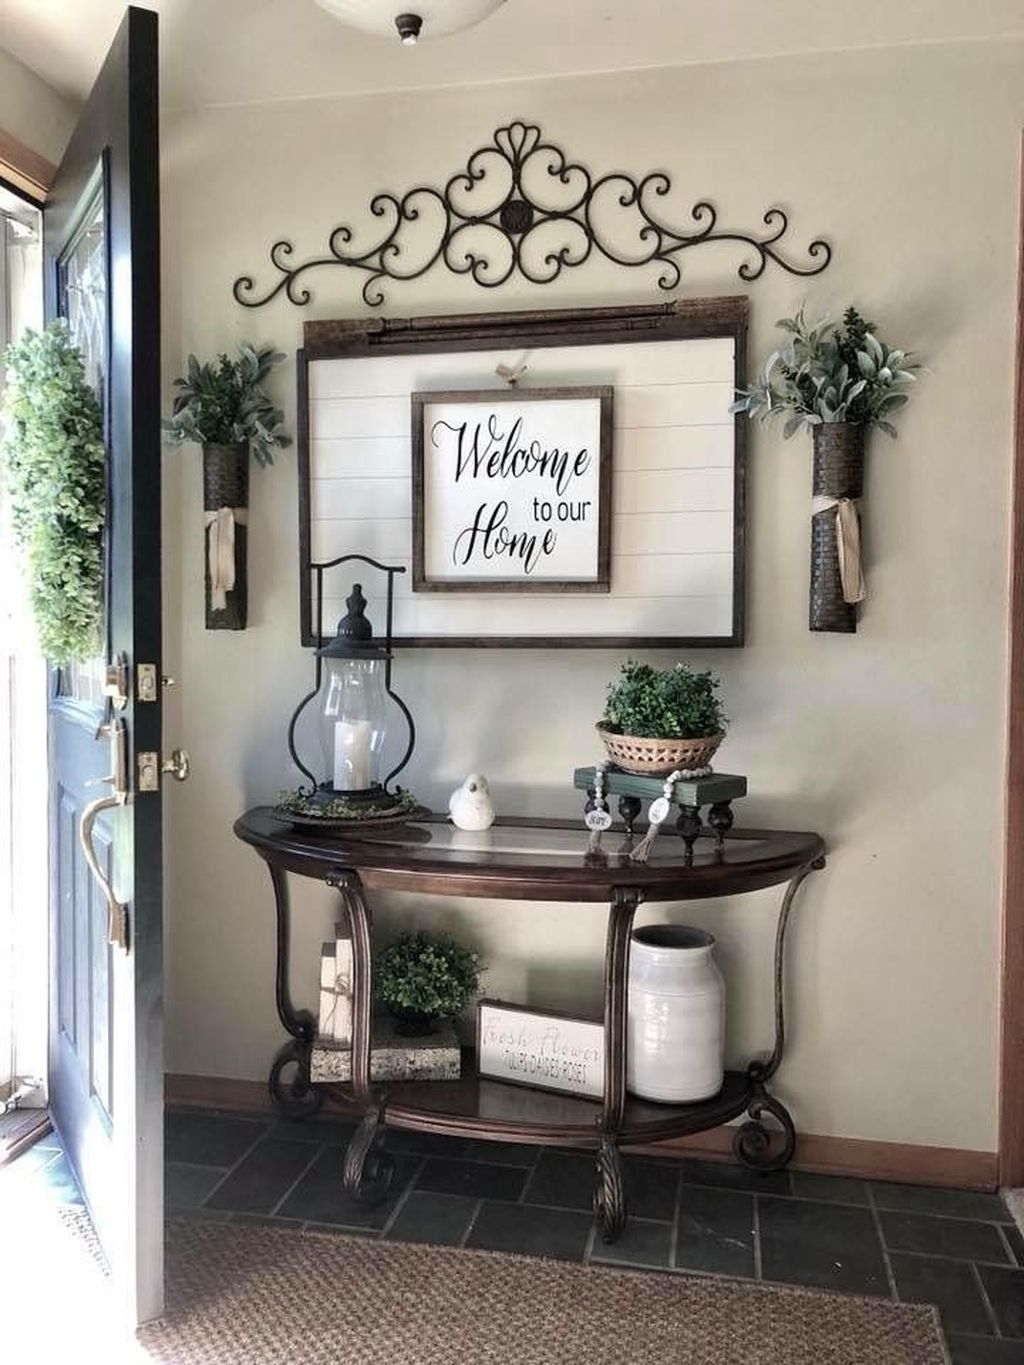 Splendid Entryway Home Décor Ideas That Make Your Place Look Cool 09